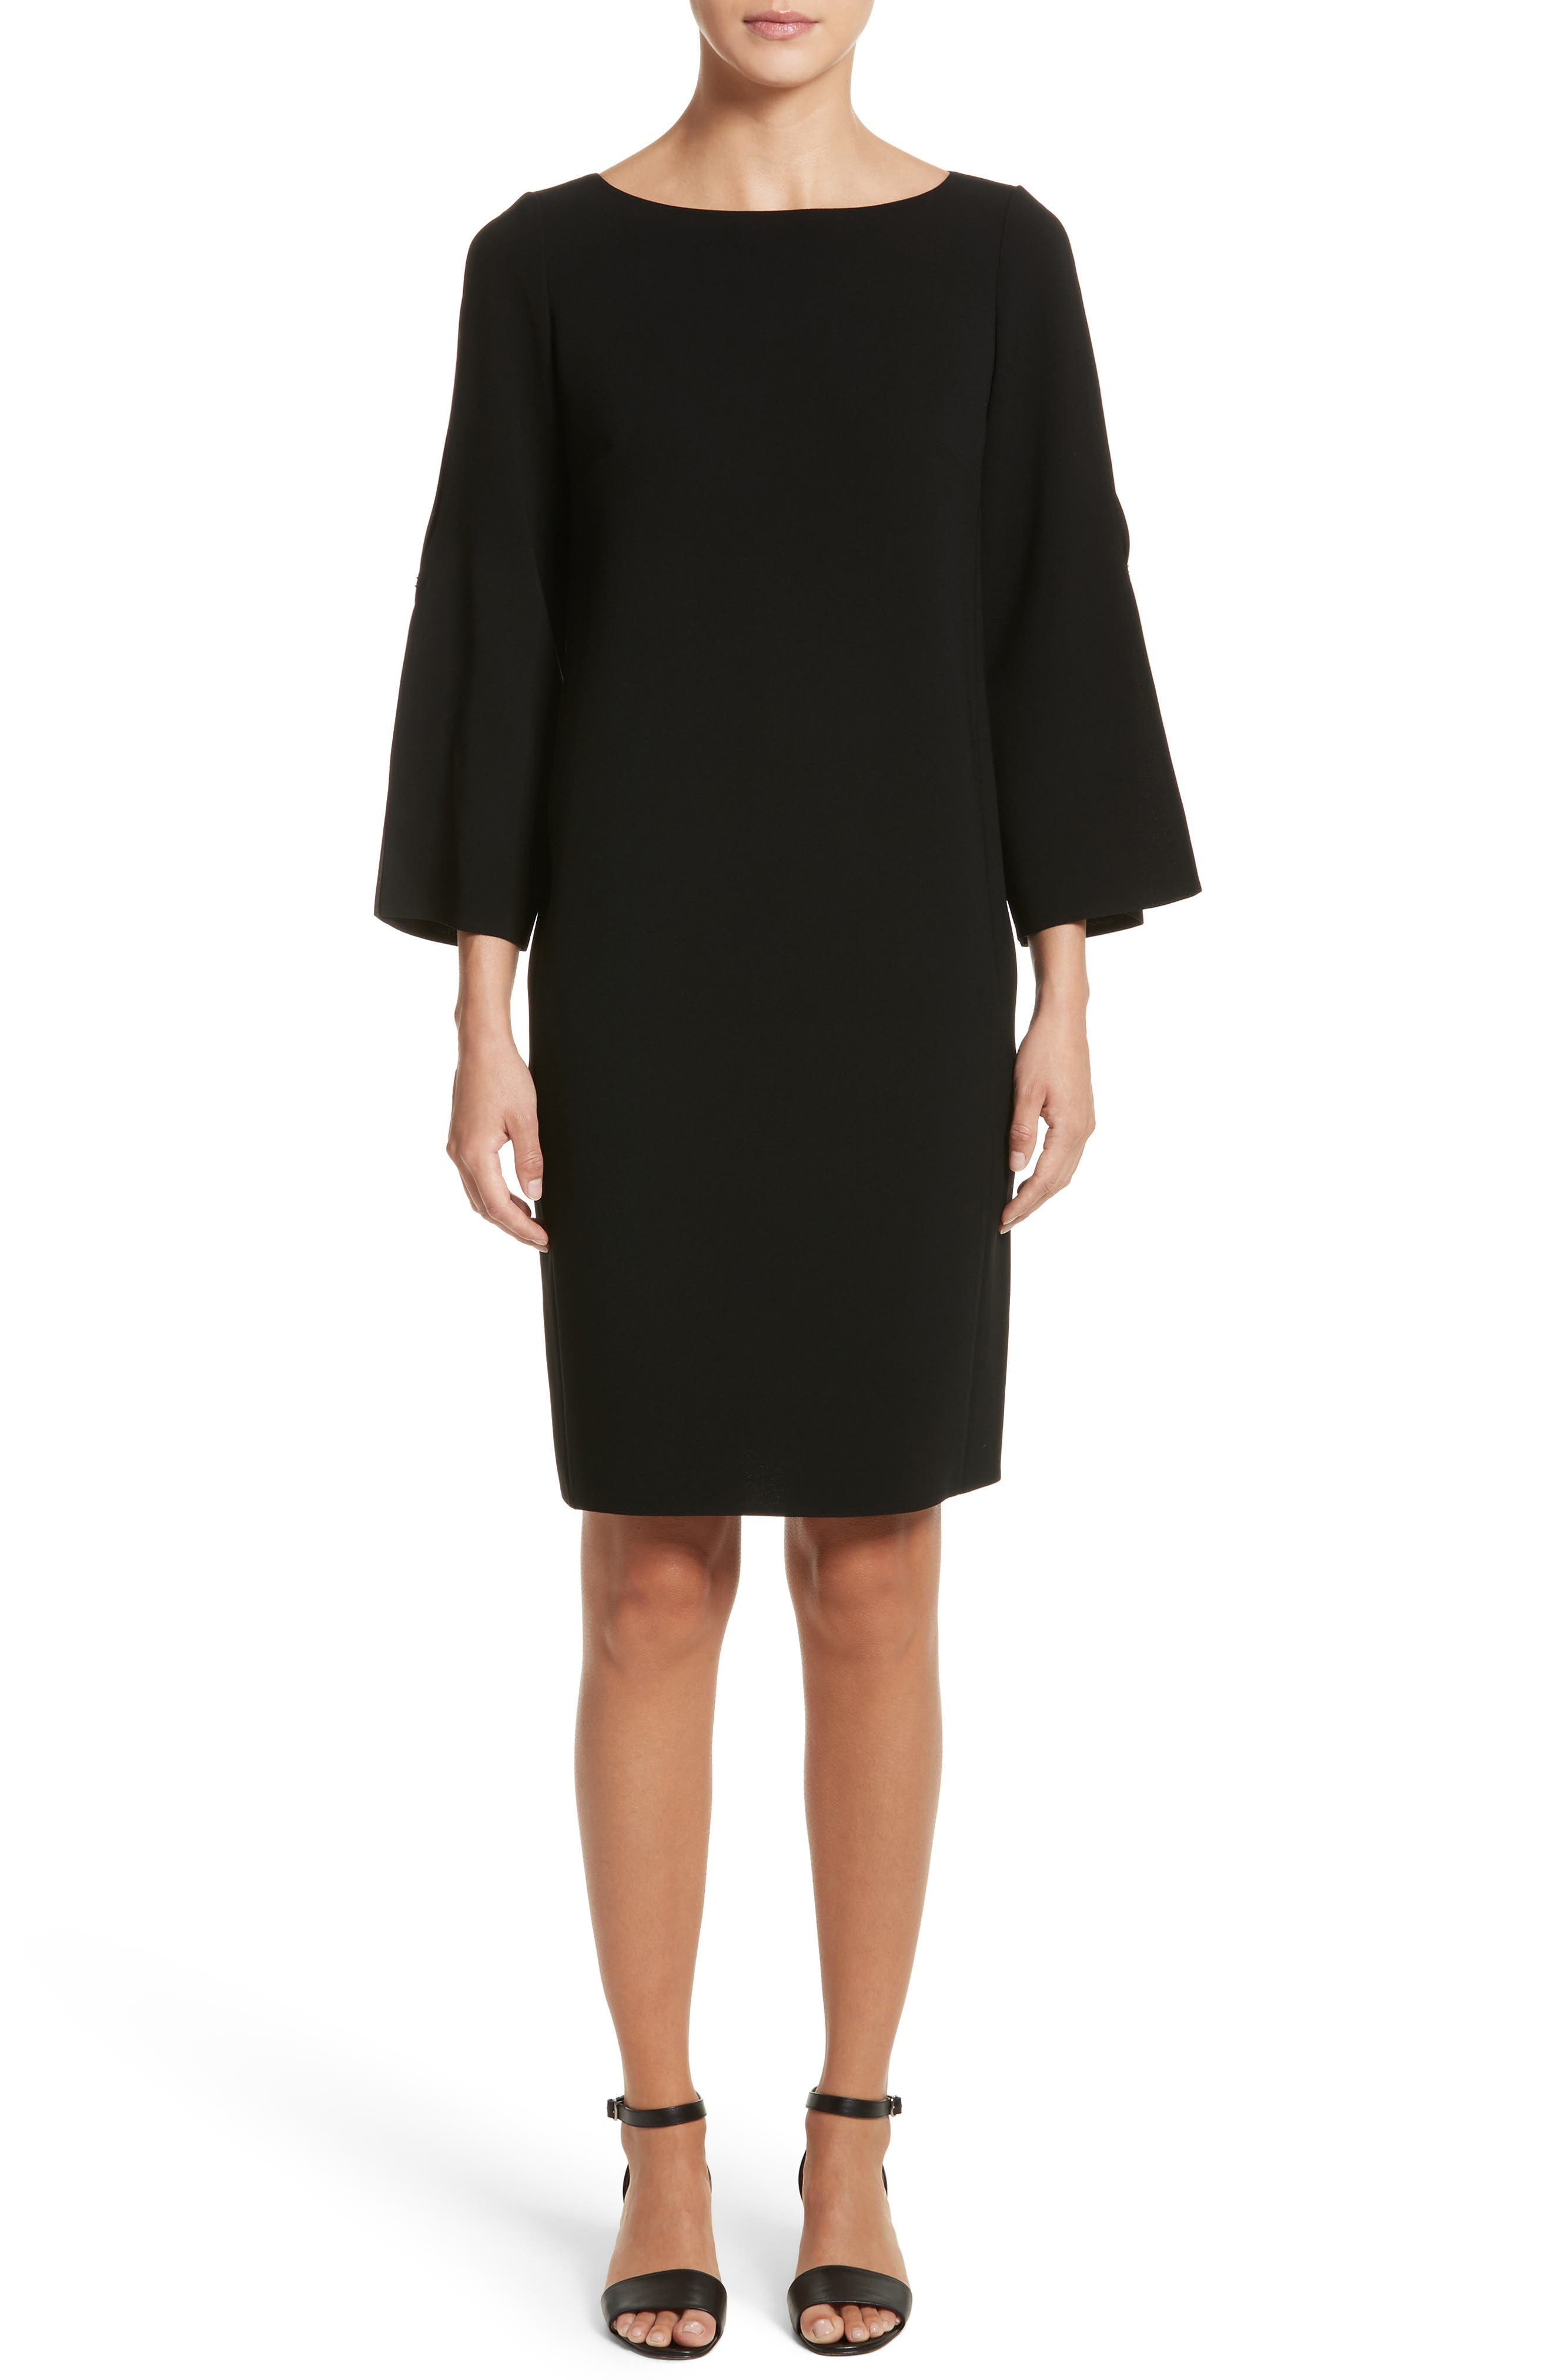 LAFAYETTE 148 NEW YORK Candace Finesse Crepe Shift Dress, Main, color, 001